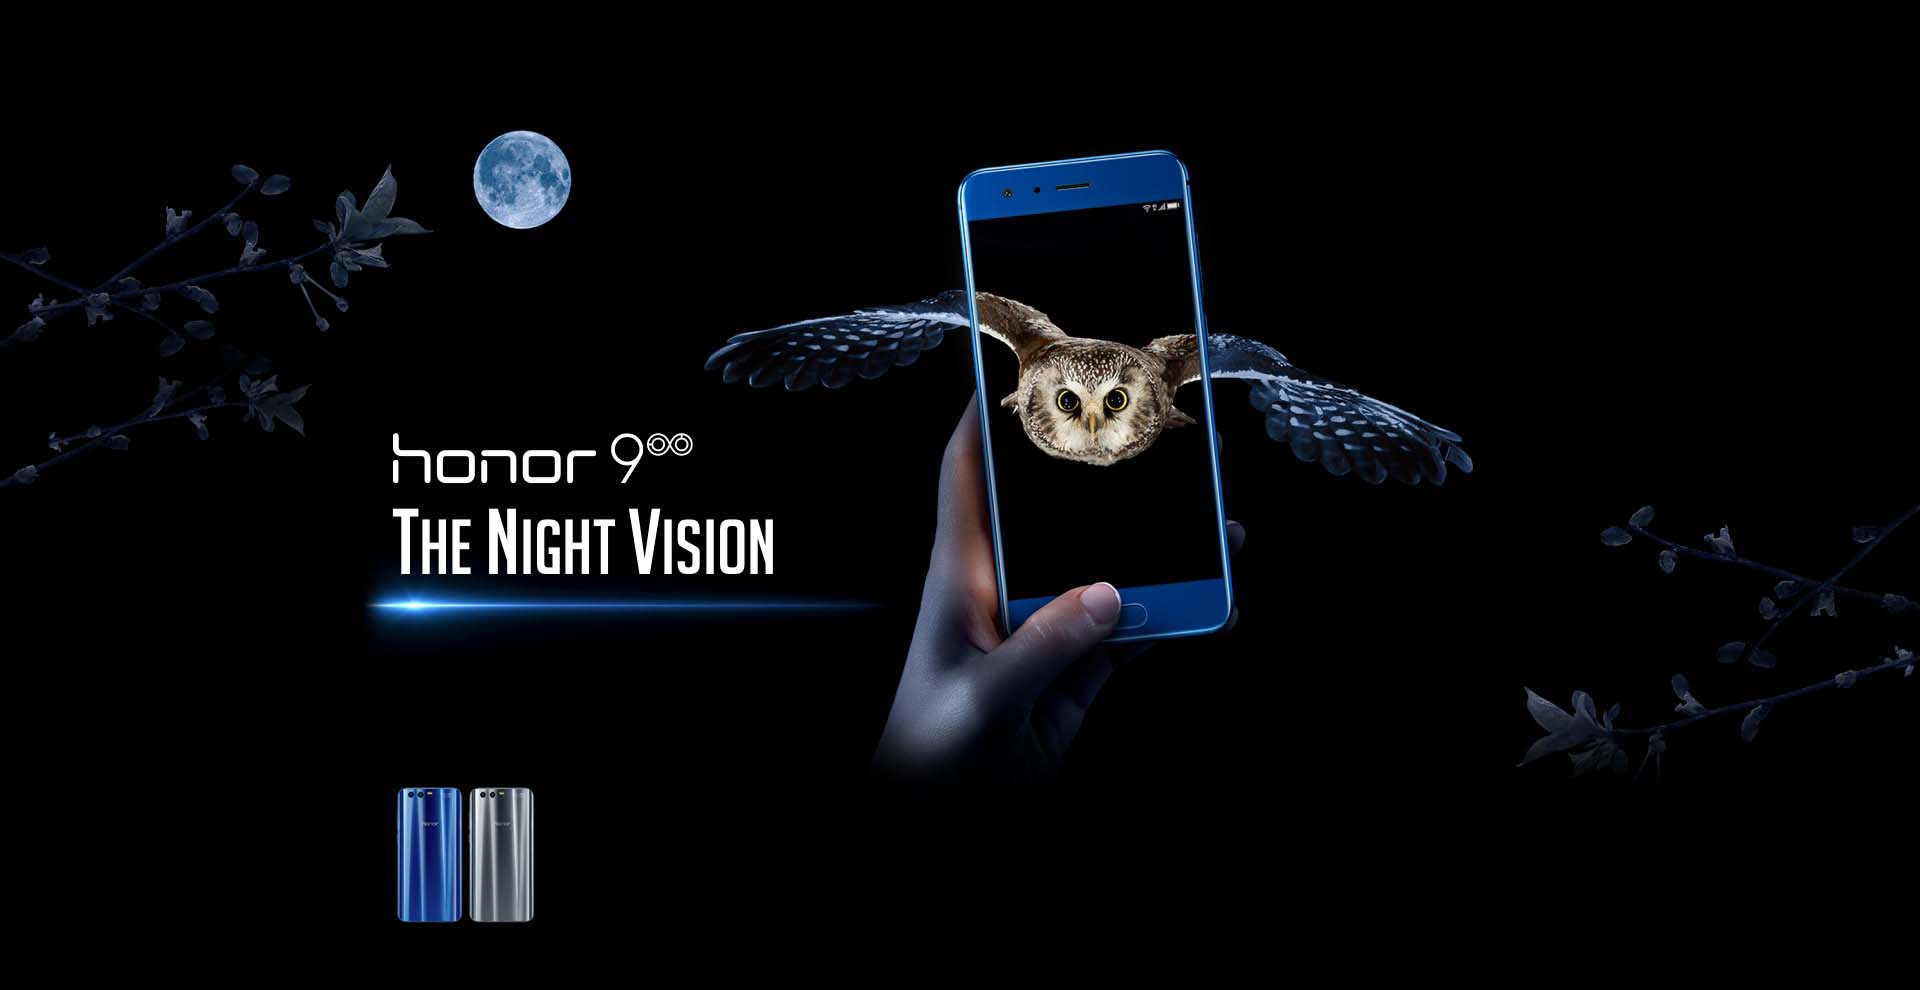 The night vision